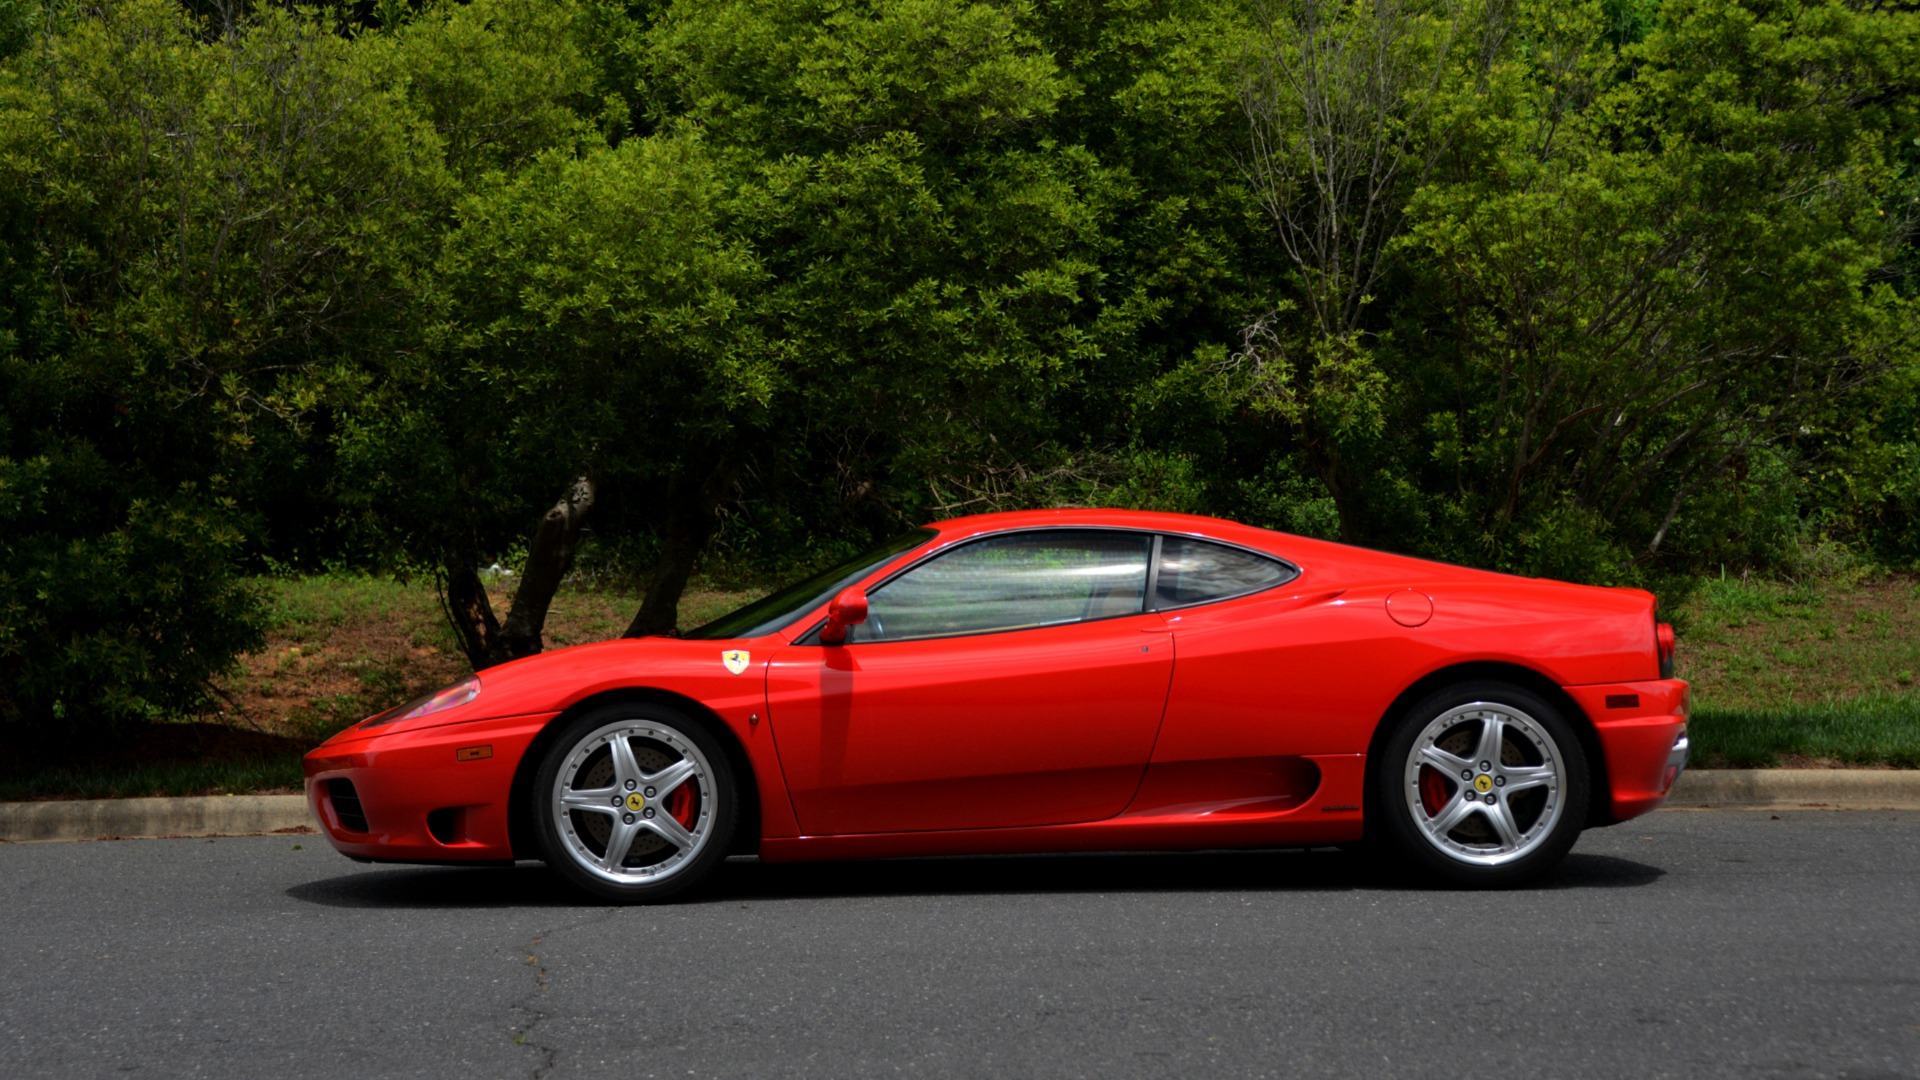 Used 2004 Ferrari 360 MODENA COUPE / GATED 6-SPD MANUAL / SUNROOF / LOW MILES for sale Sold at Formula Imports in Charlotte NC 28227 2